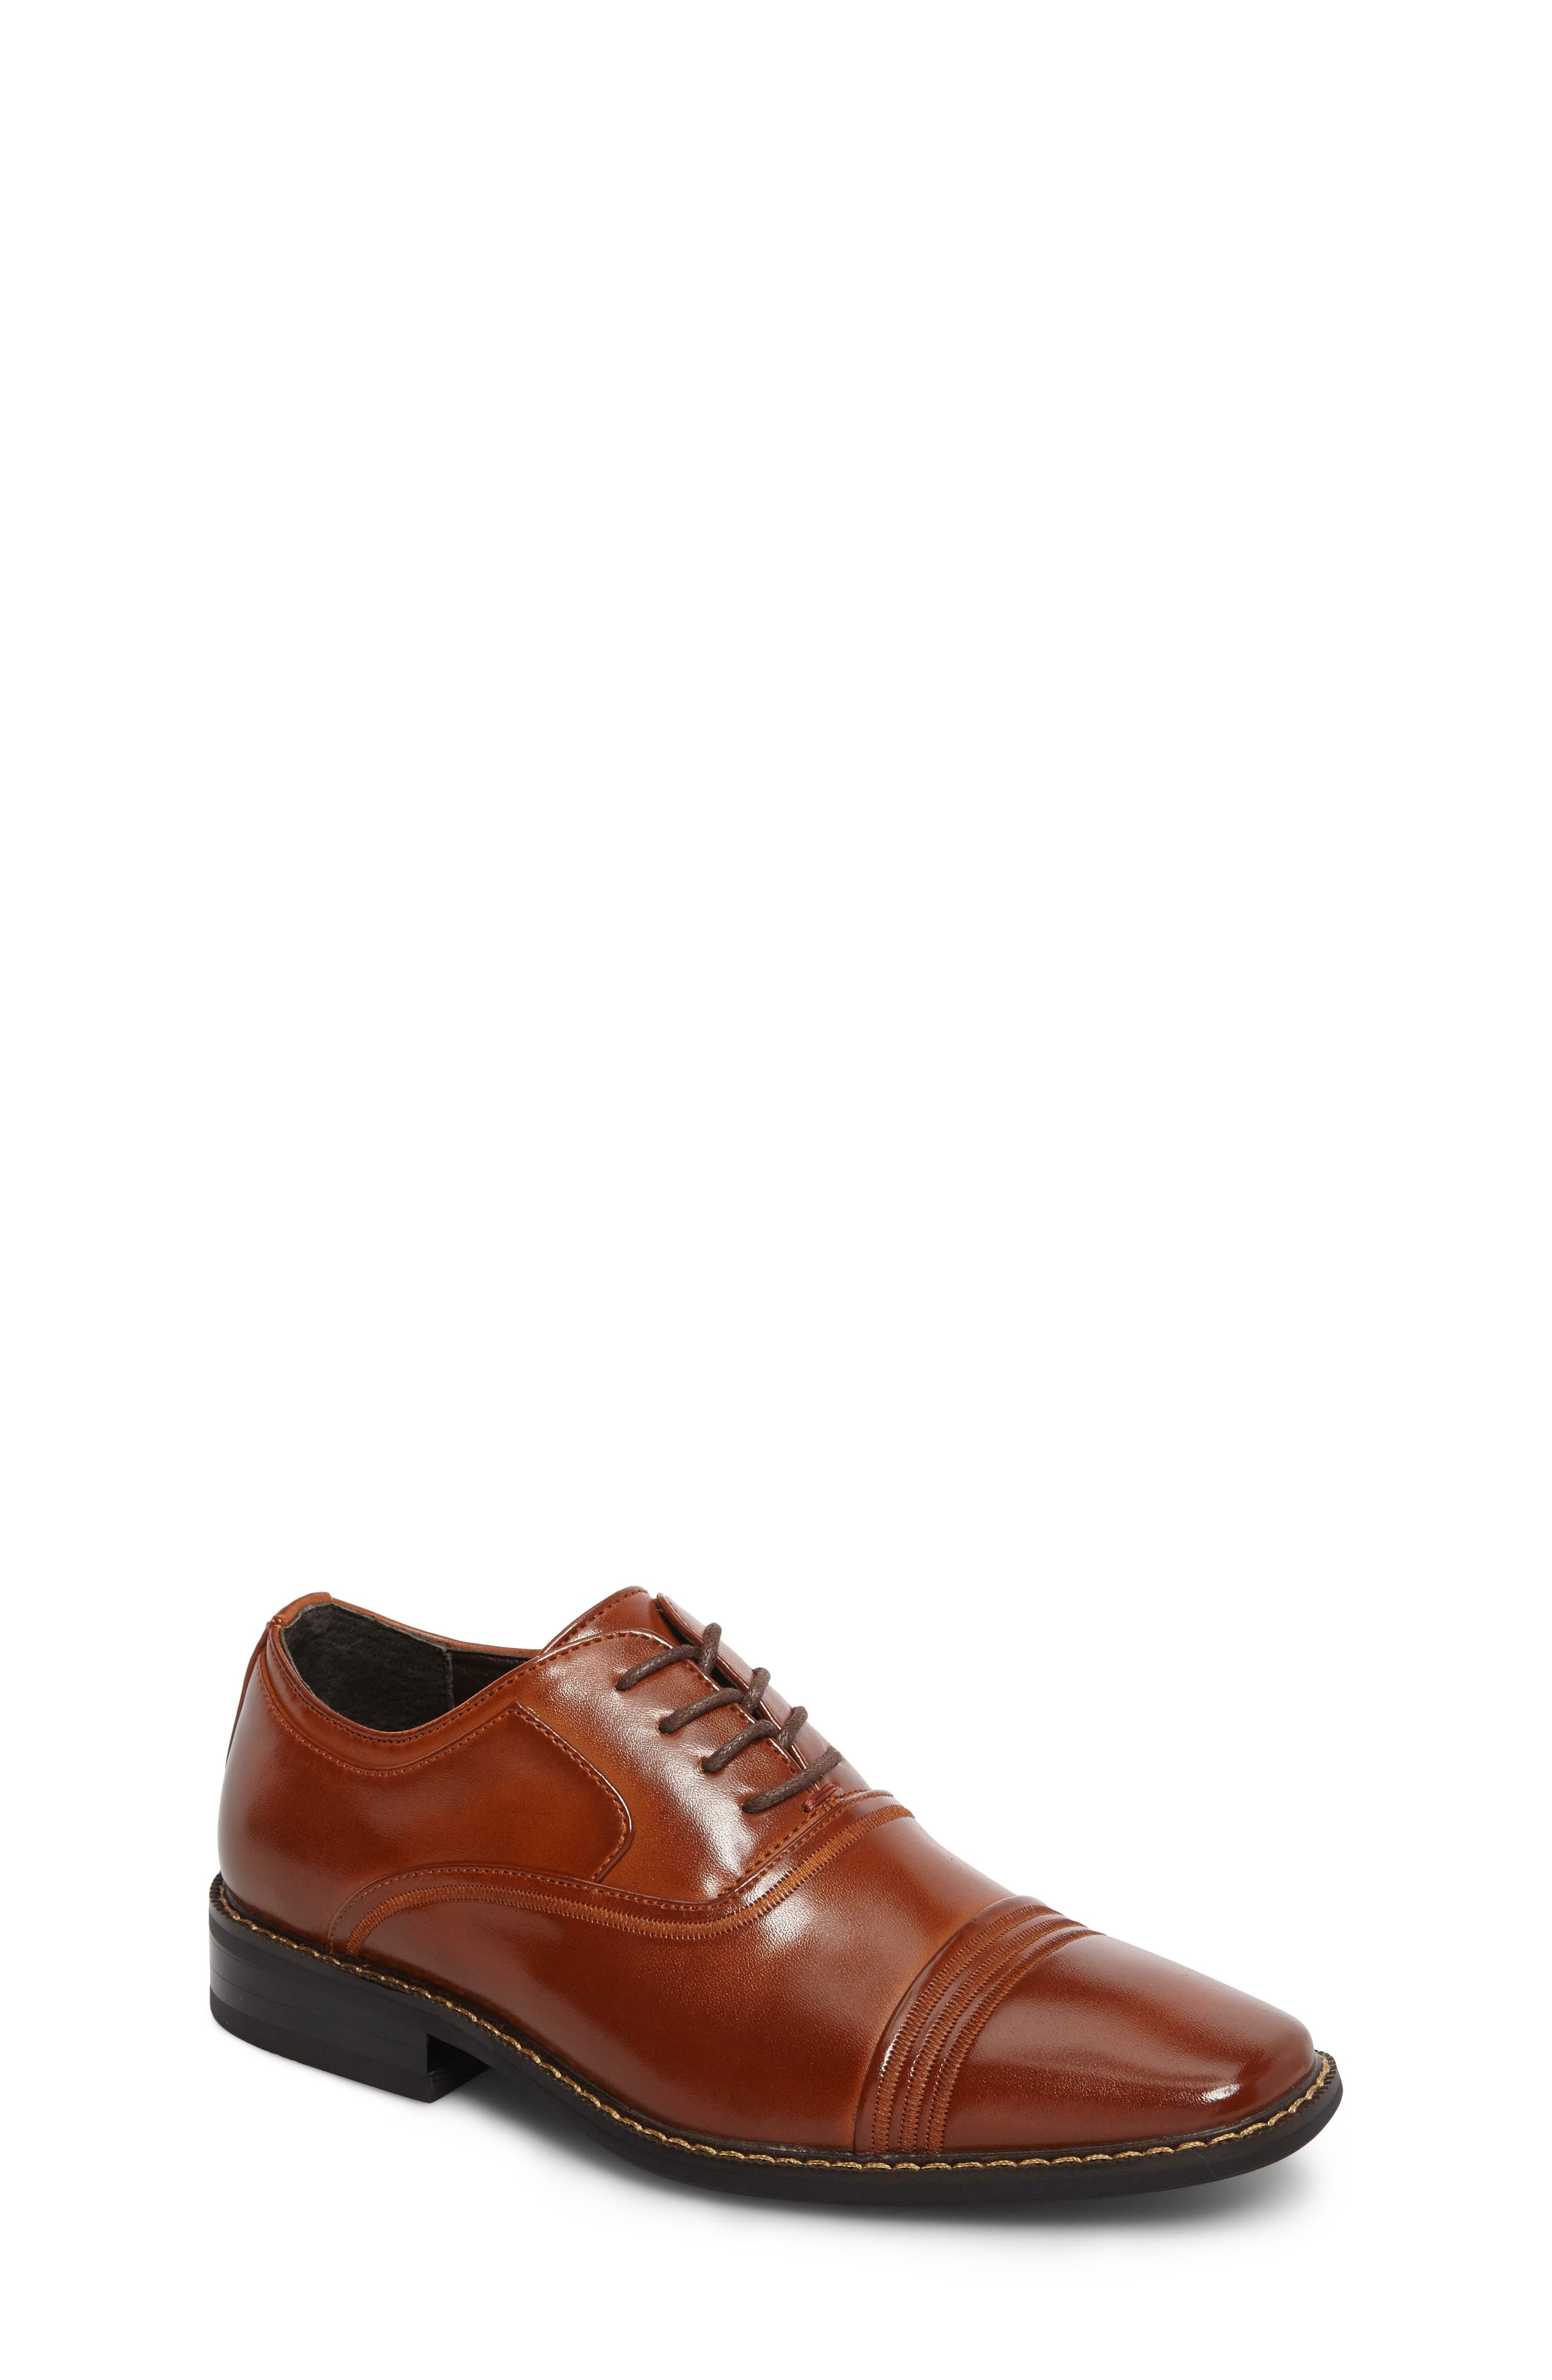 Alternate Image 1 Selected - Stacy Adams Bingham Cap Toe Oxford (Toddler, Little Kid & Big Kid)